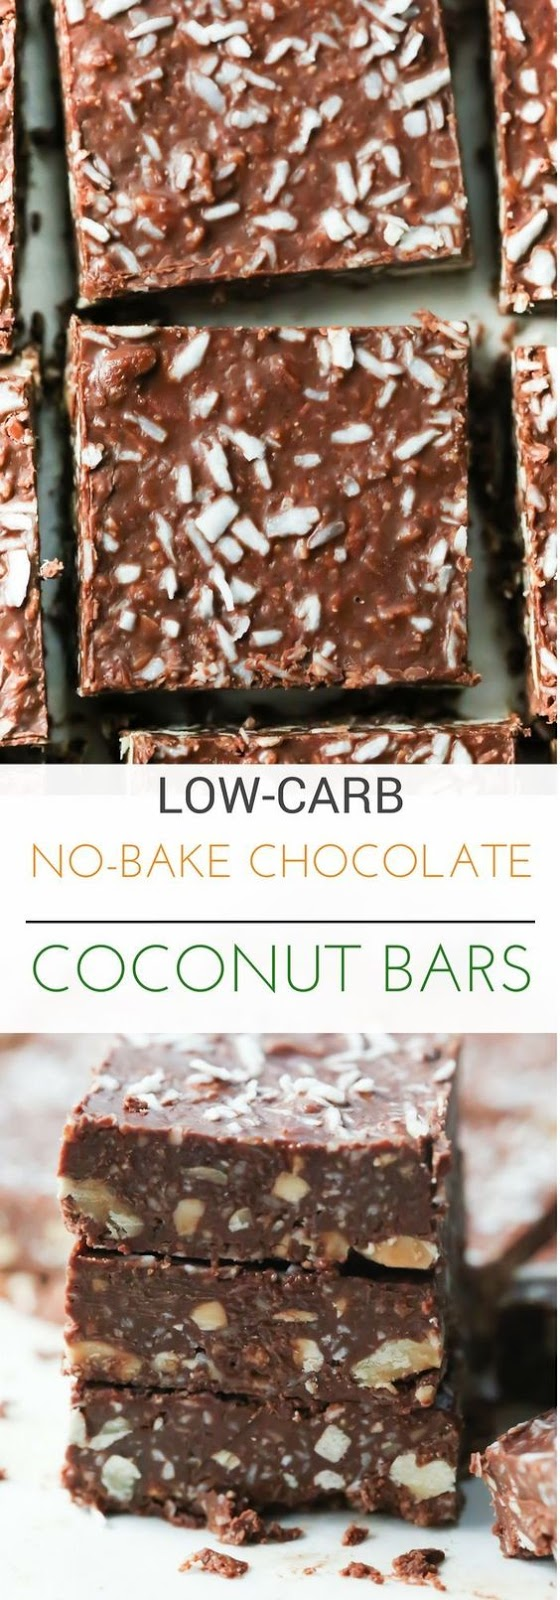 Delicious Low-Carb No-Bake Chocolate Coconut Bars